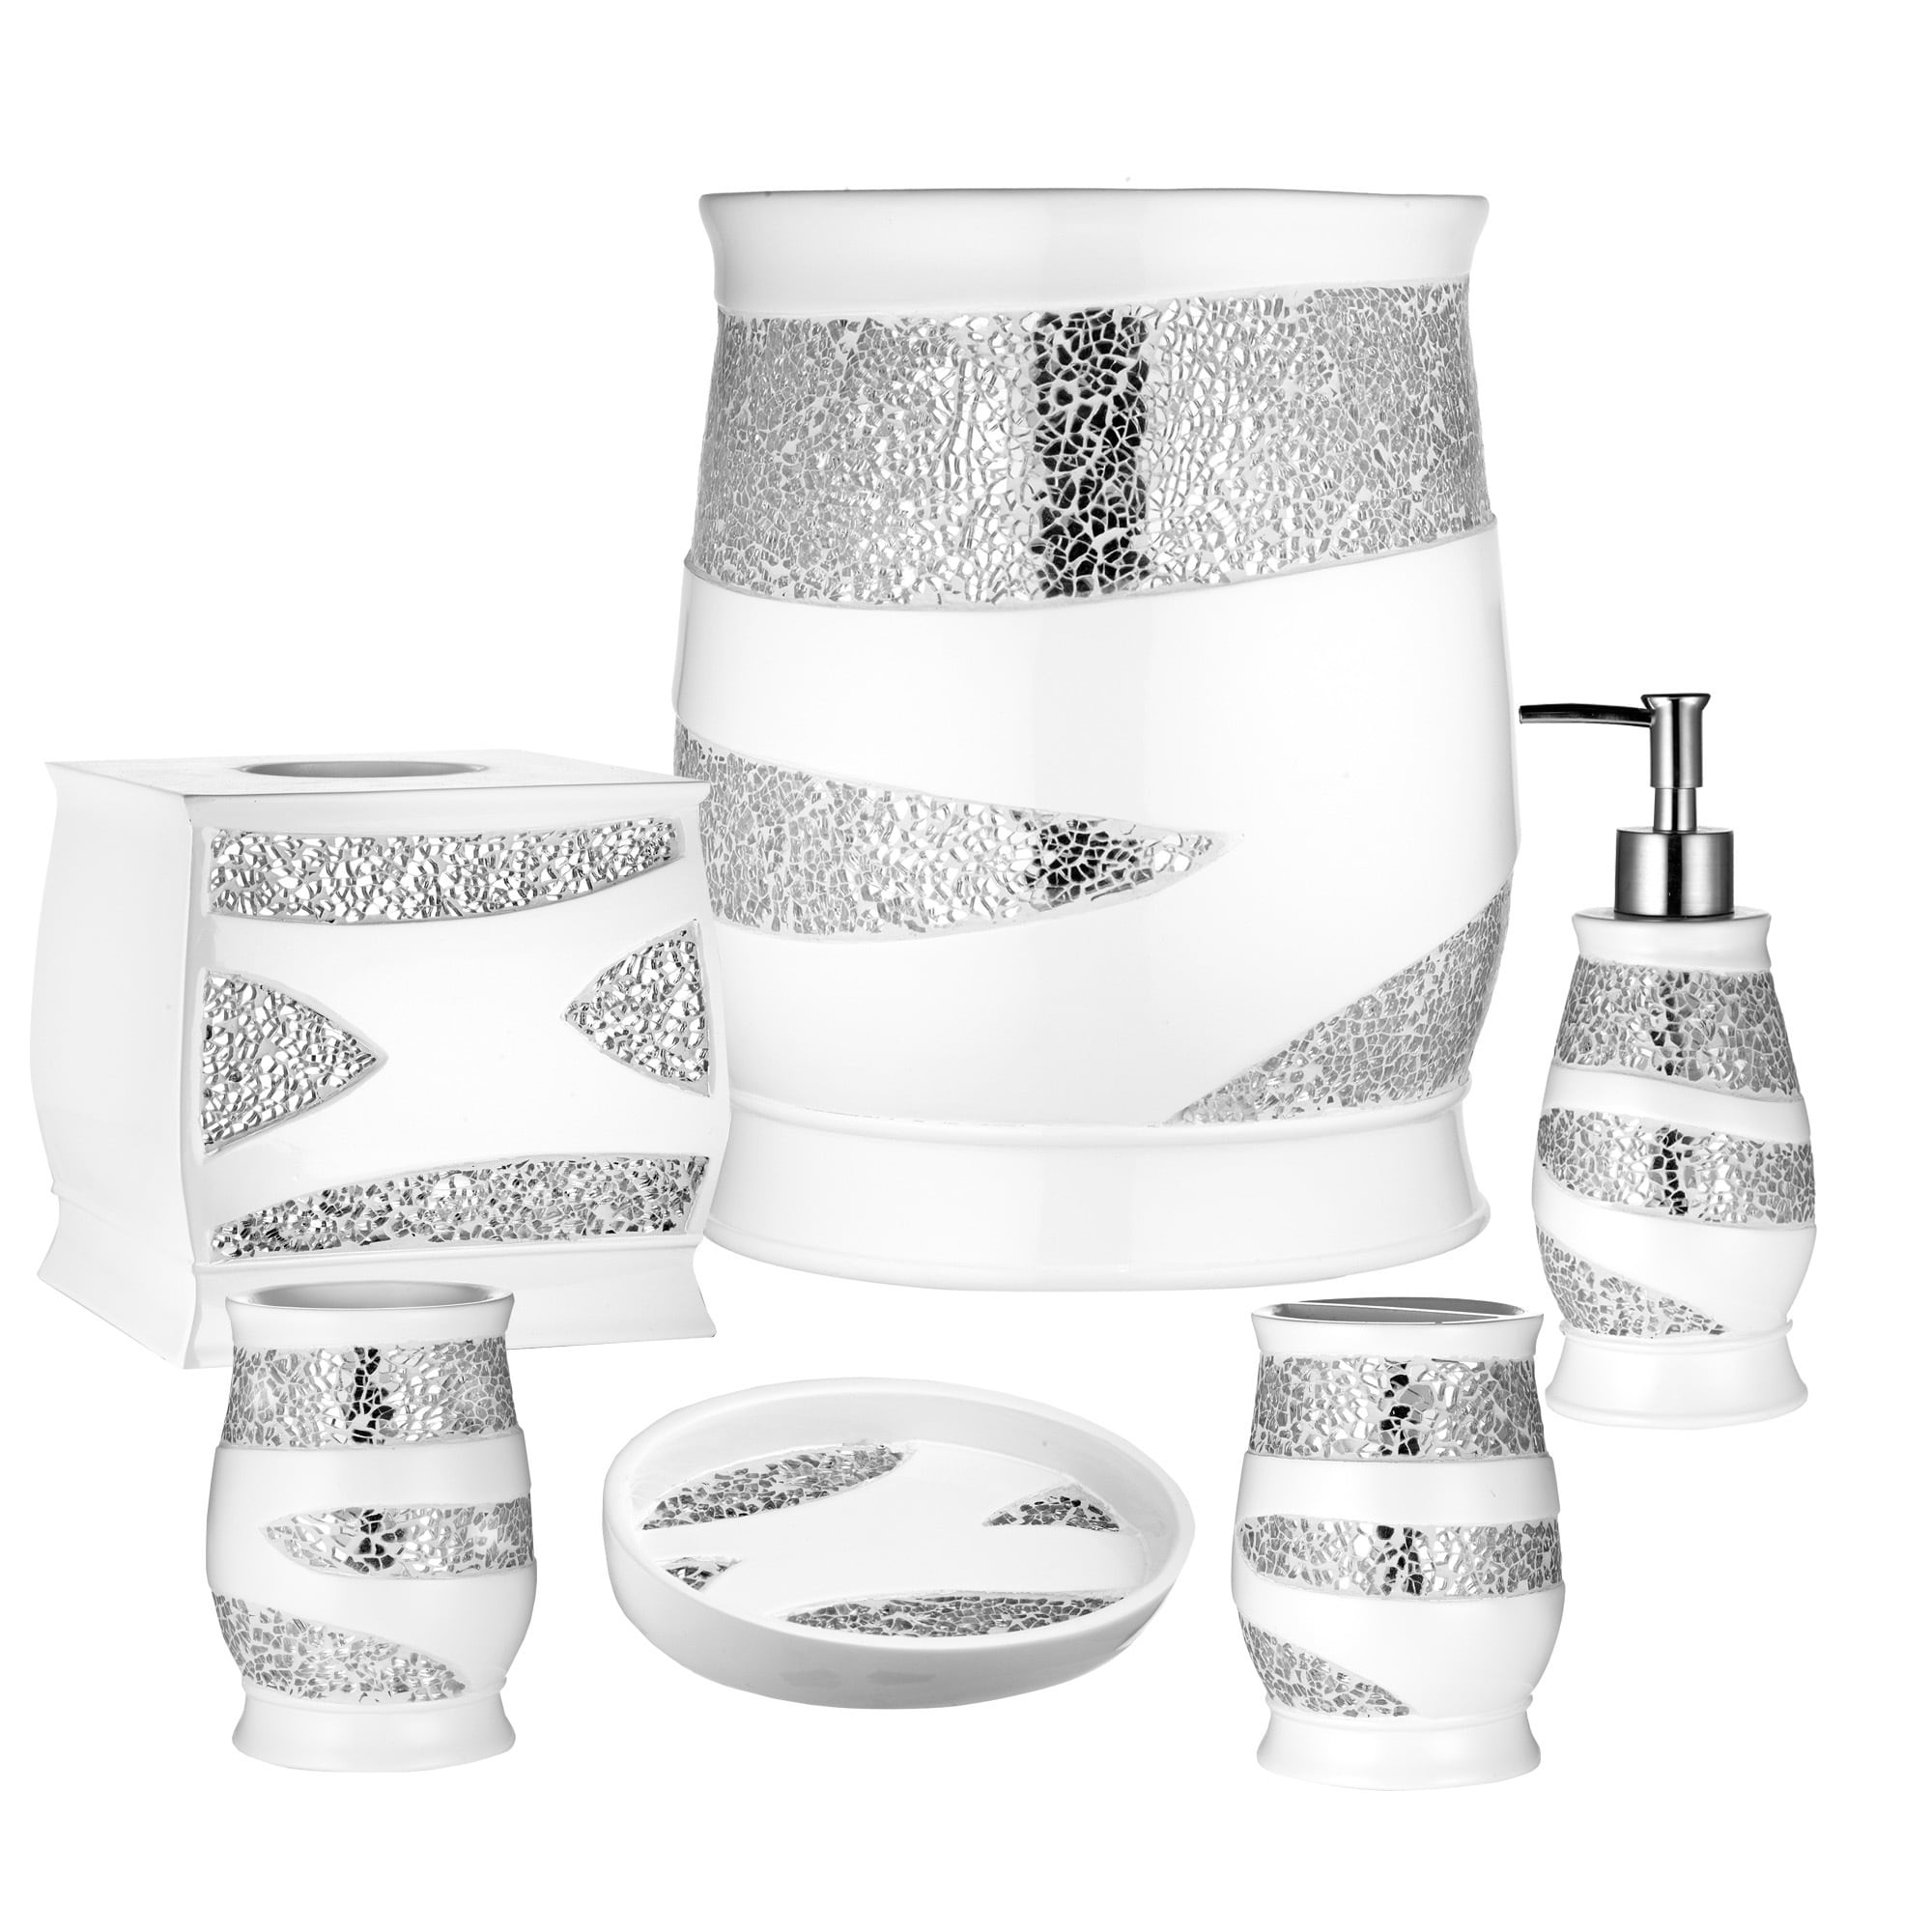 bed bath n more luxury bath accessory collection set or